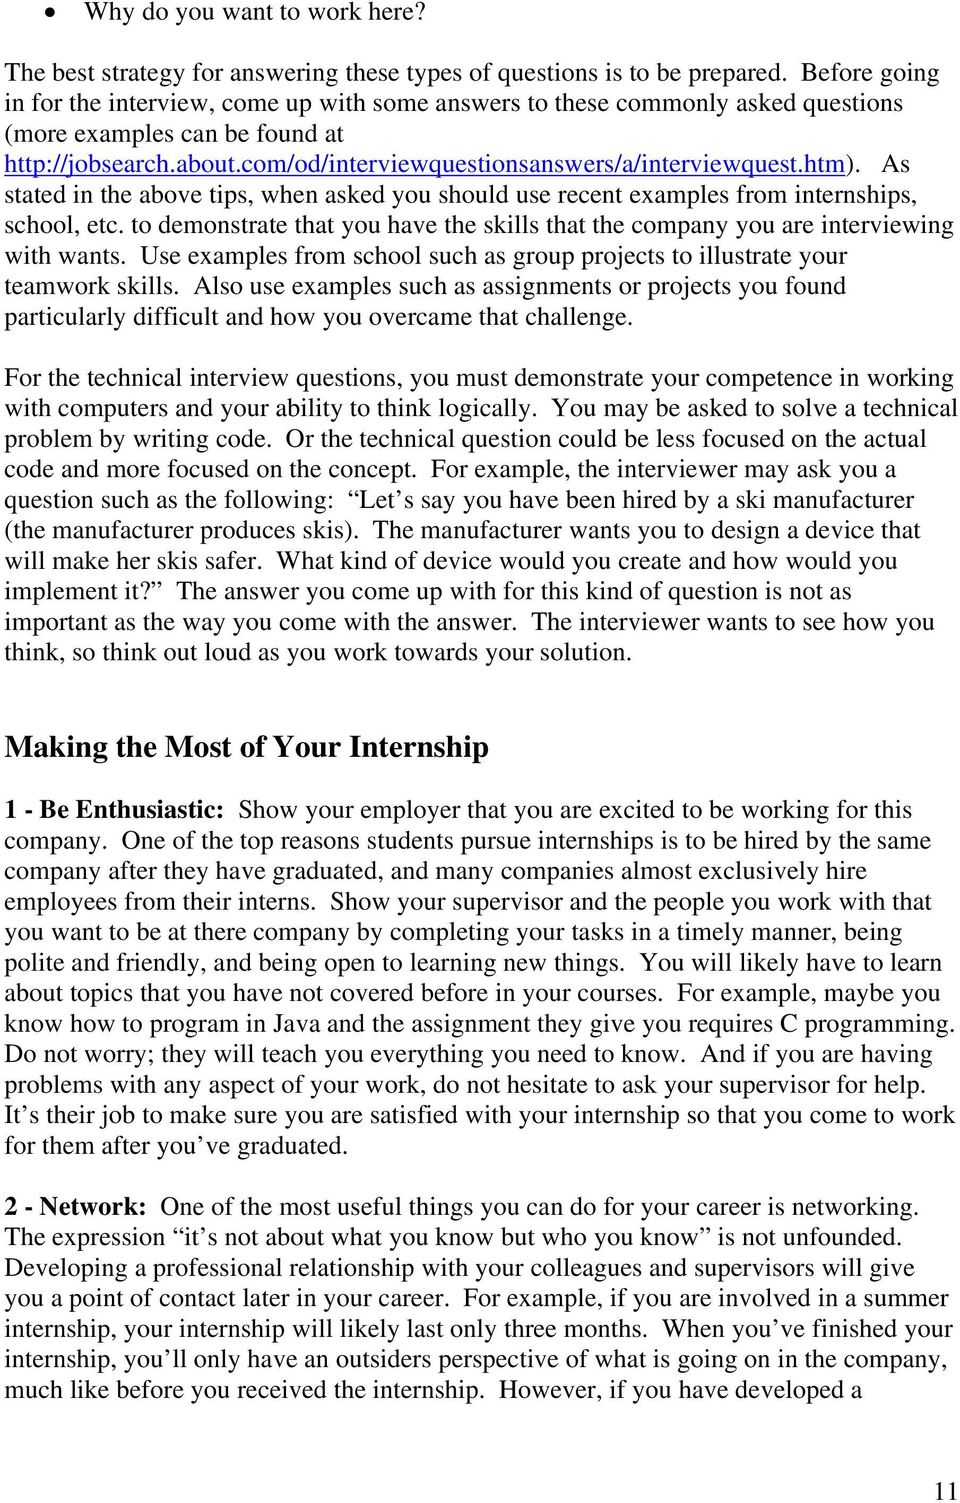 htm). As stated in the above tips, when asked you should use recent examples from internships, school, etc. to demonstrate that you have the skills that the company you are interviewing with wants.